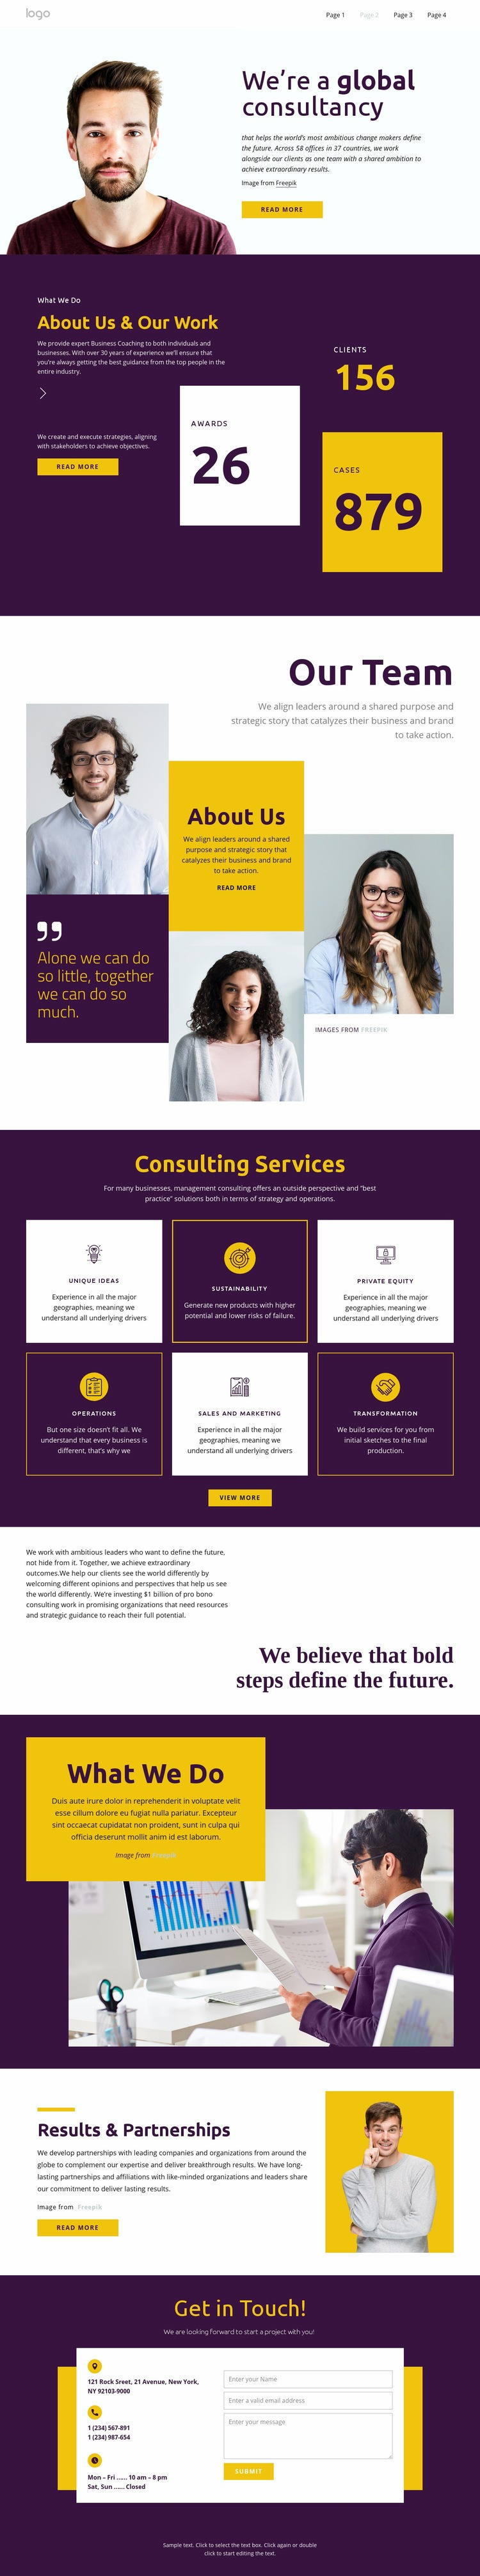 Consultants for big business Html Code Example